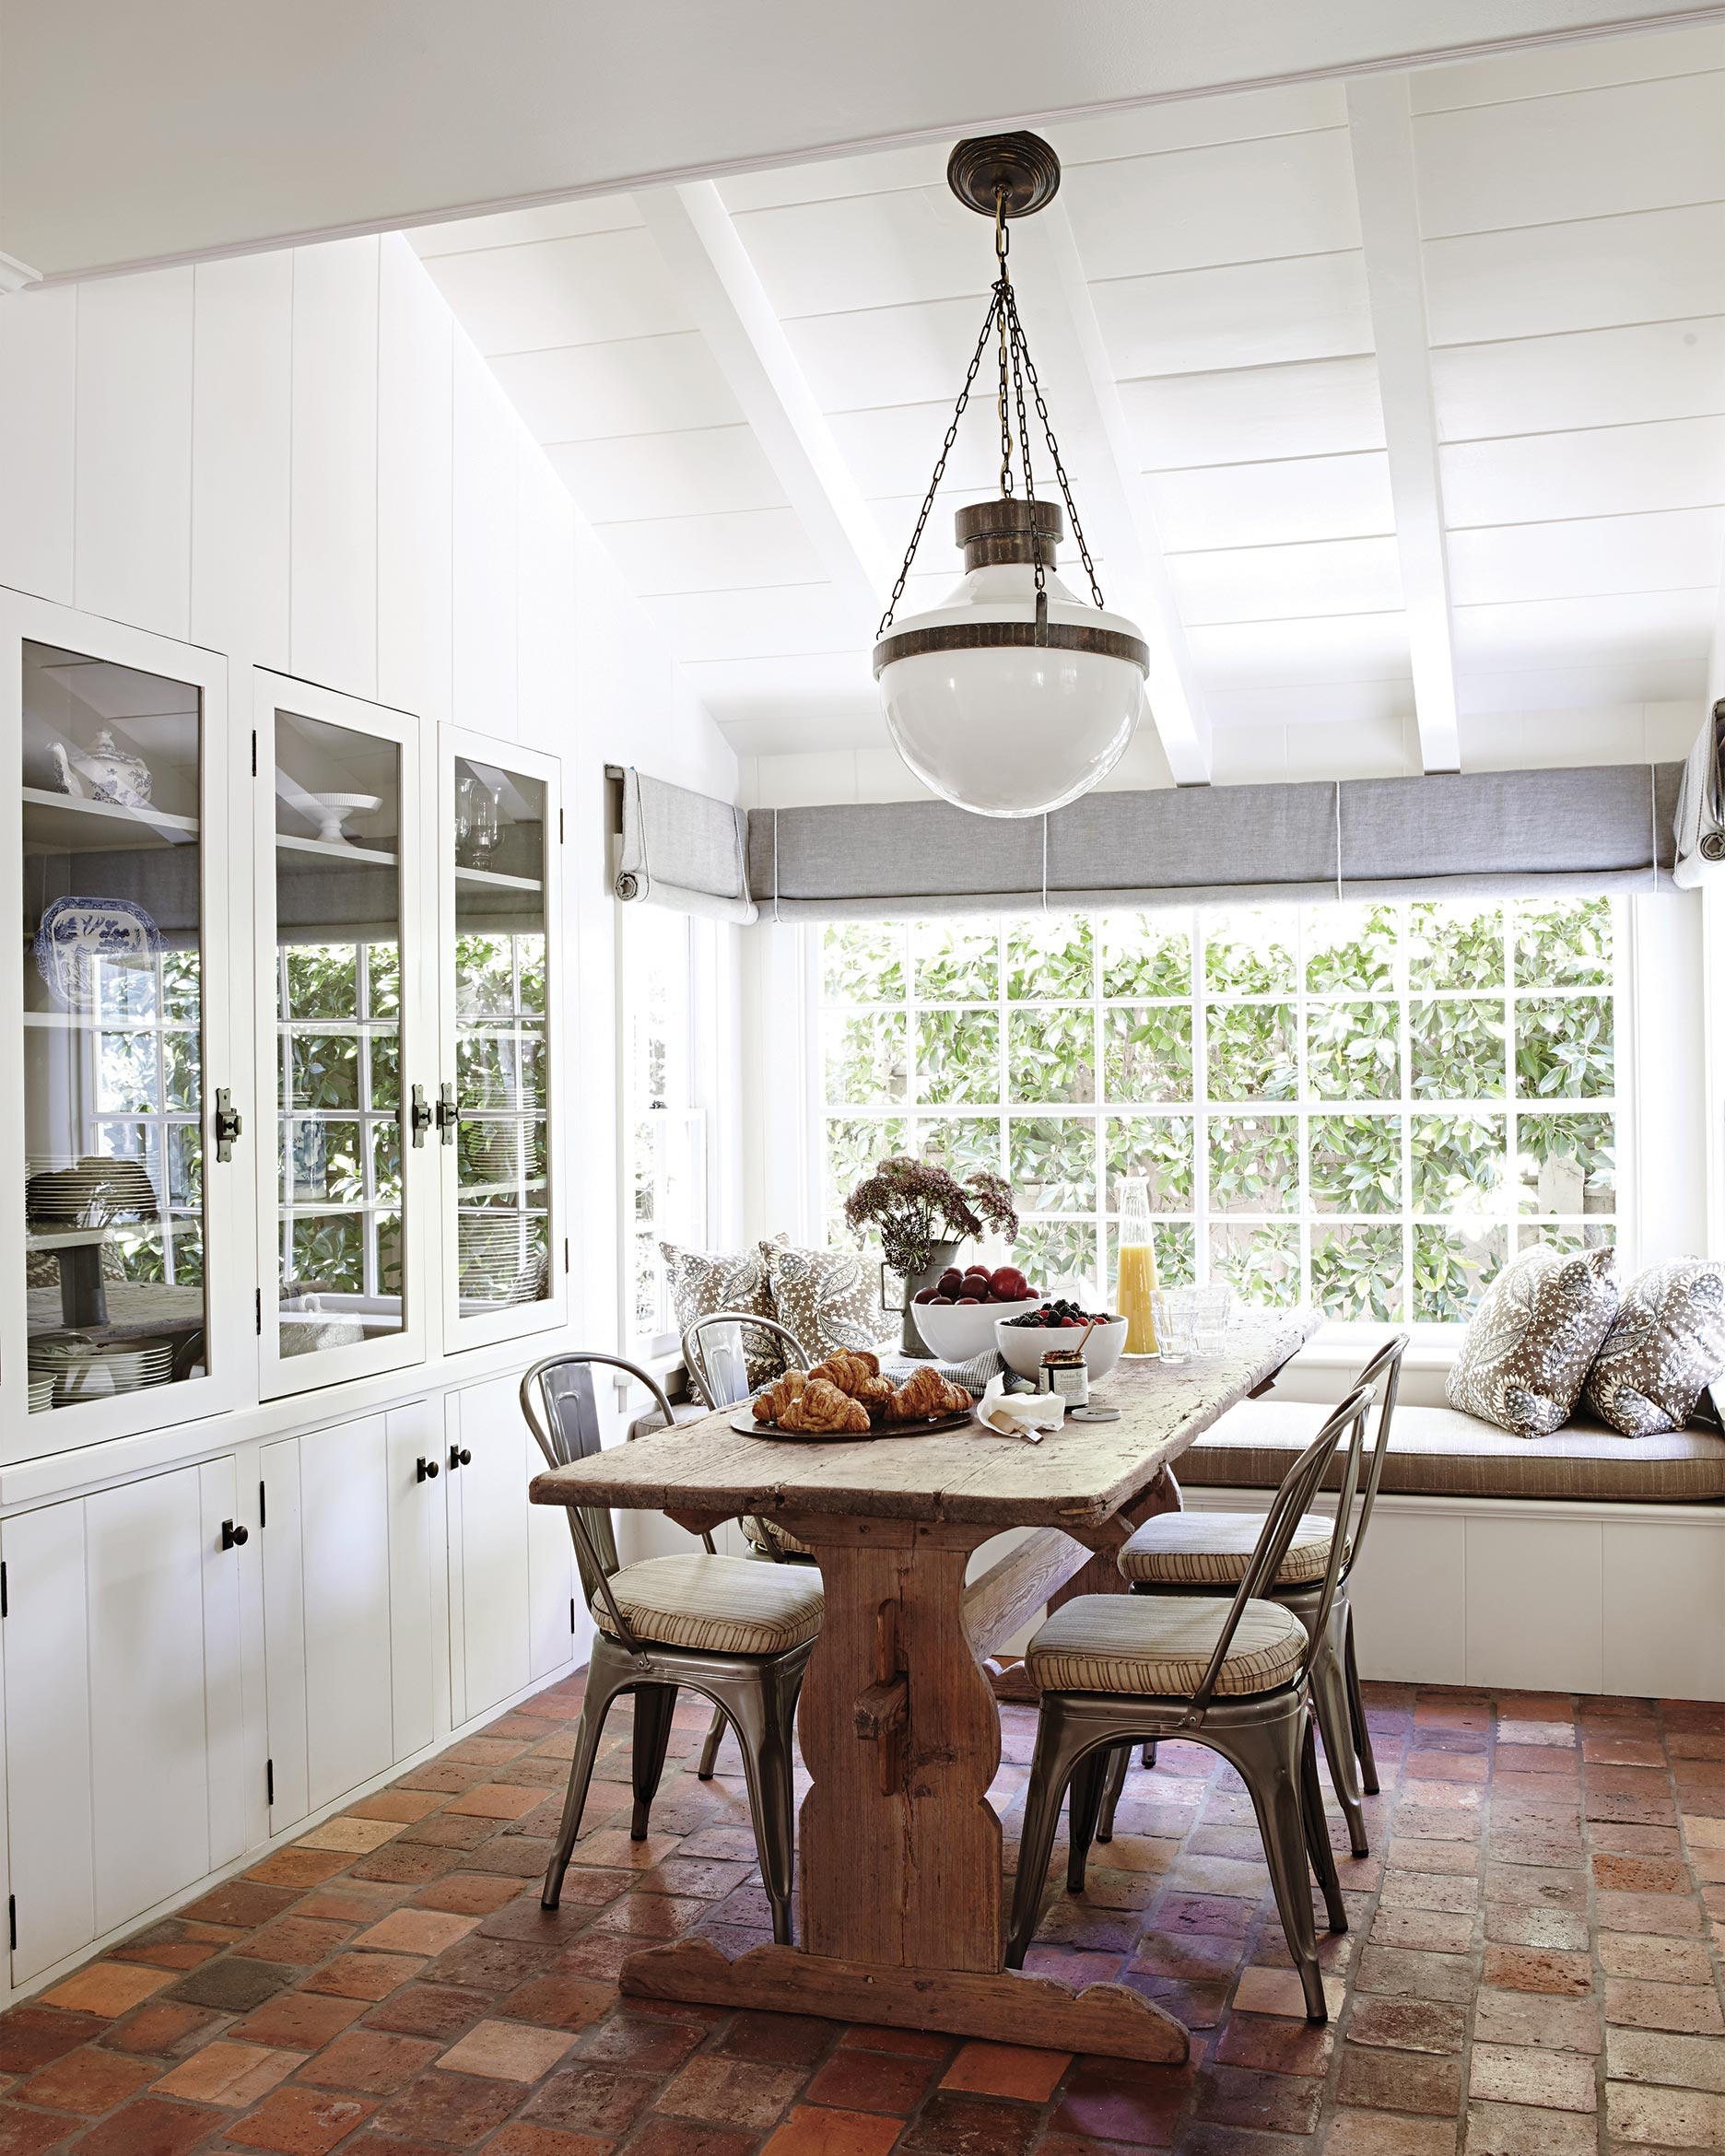 lurie-home-furniture-kitchen-dining-322-d112278.jpg